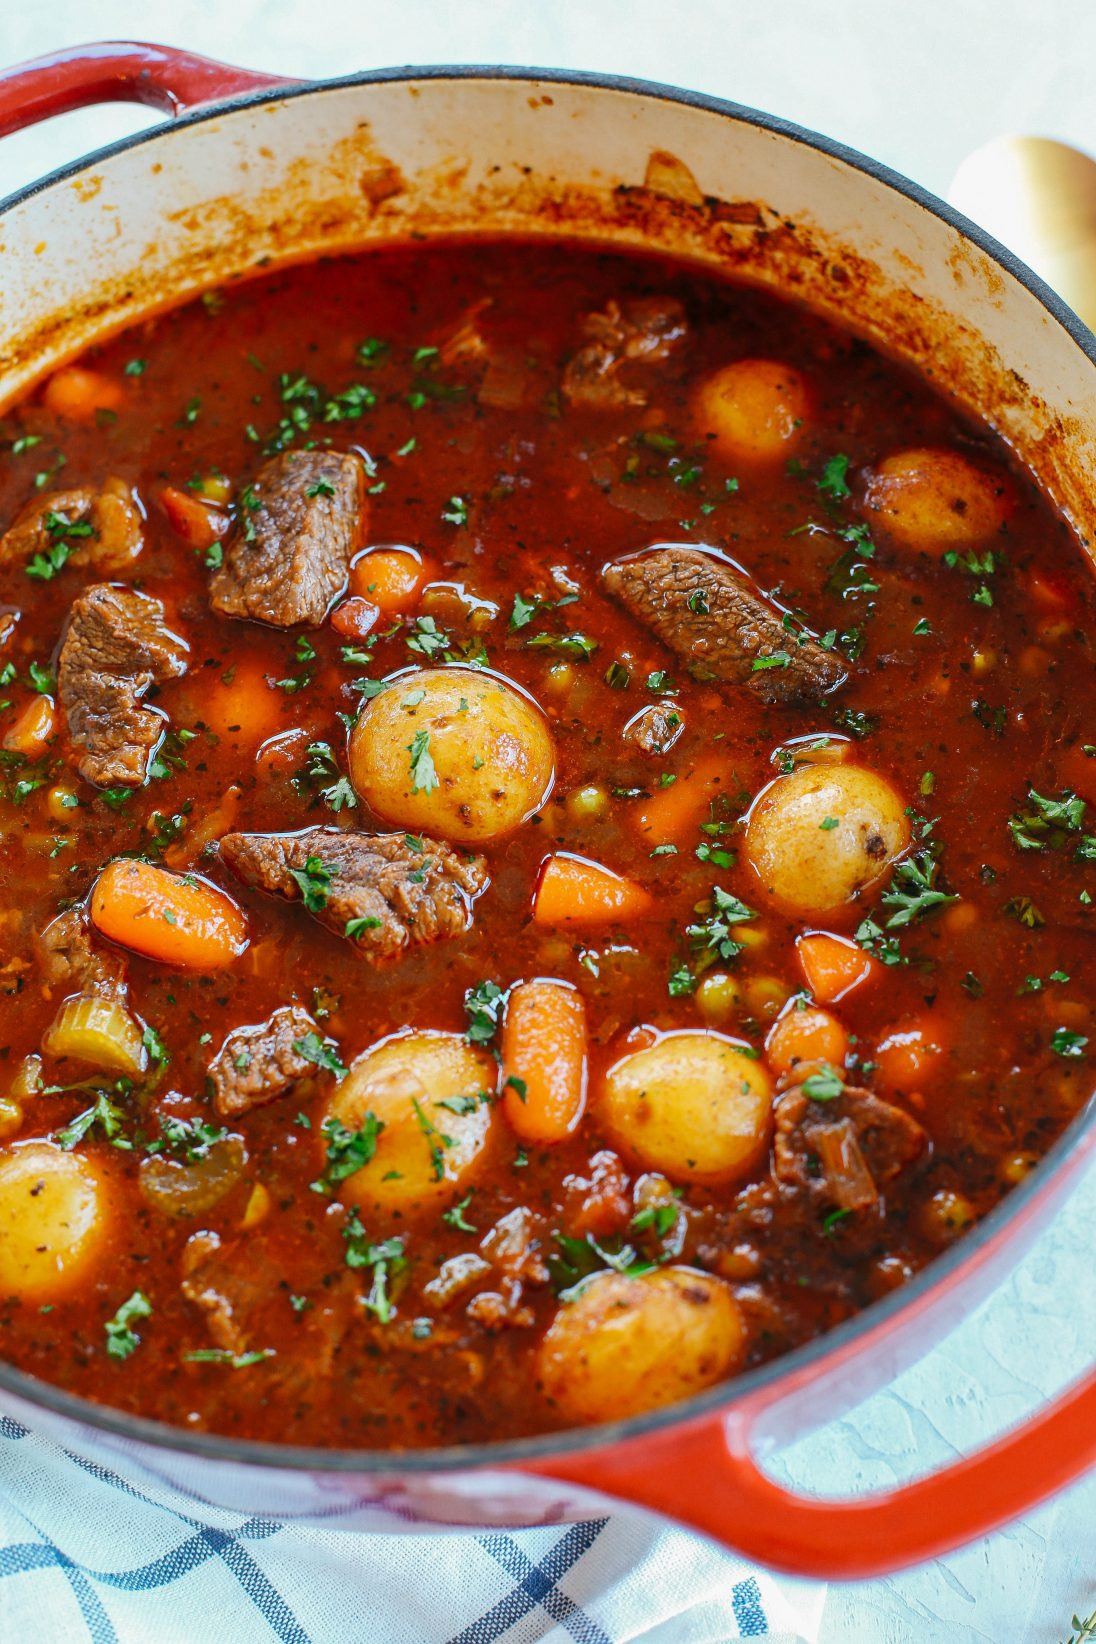 Beef Stew Stove Top  Beef and Tomato Stew Instant Pot Slow Cooker and Stove